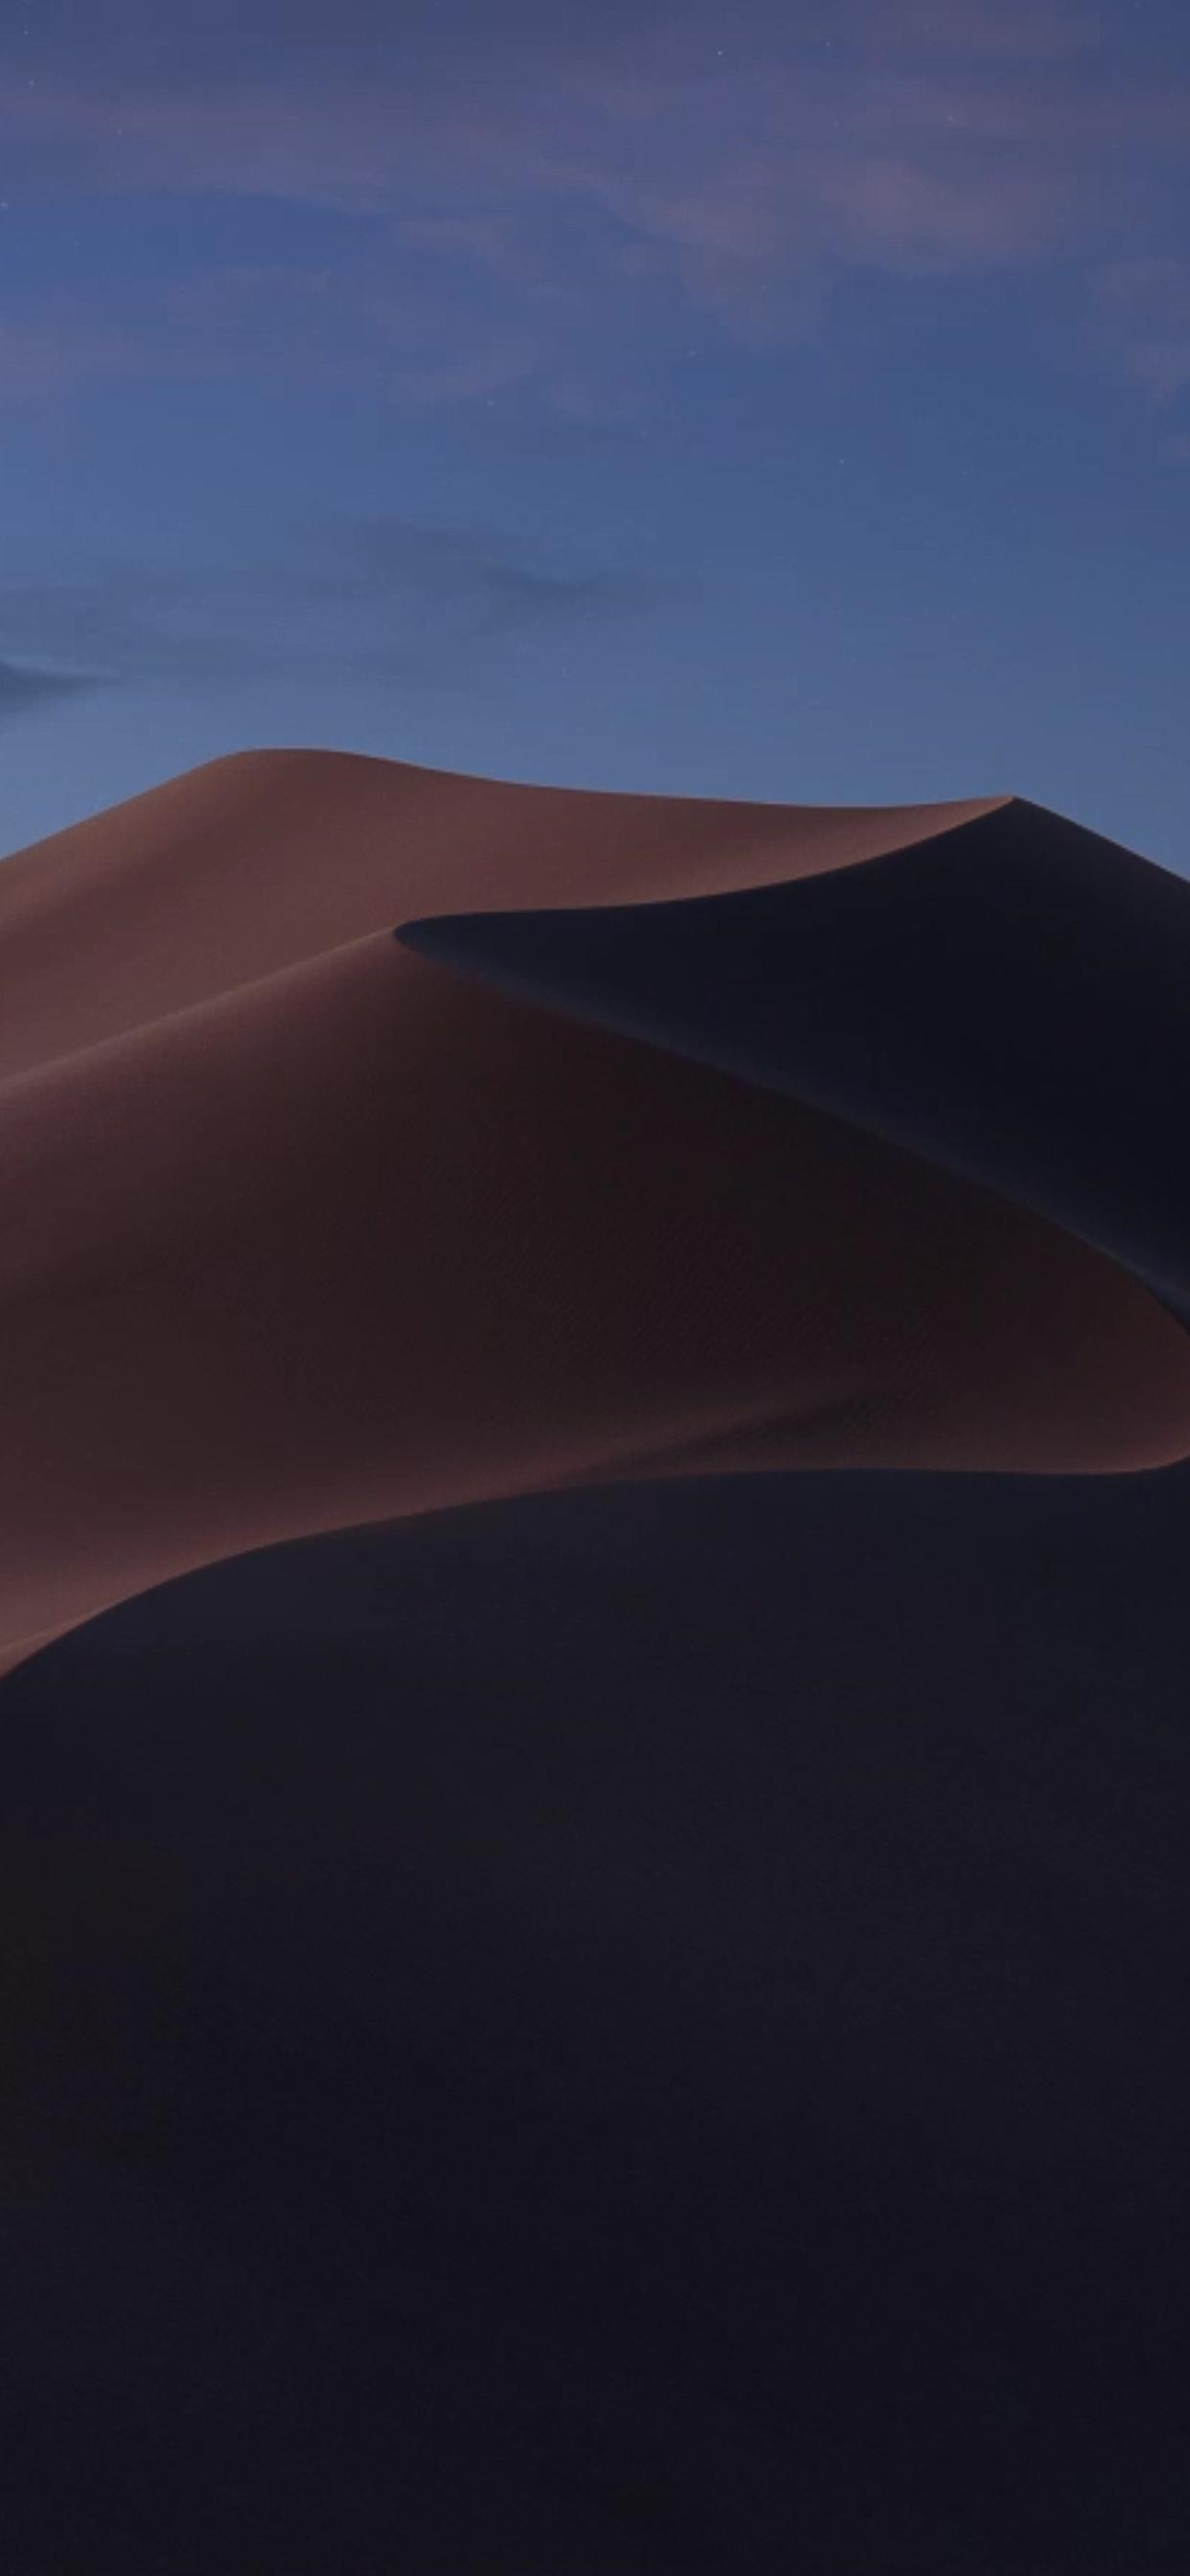 Tons of awesome macos mojave wallpapers to download for free. Macos Mojave Wallpapers Wallpaper Cave